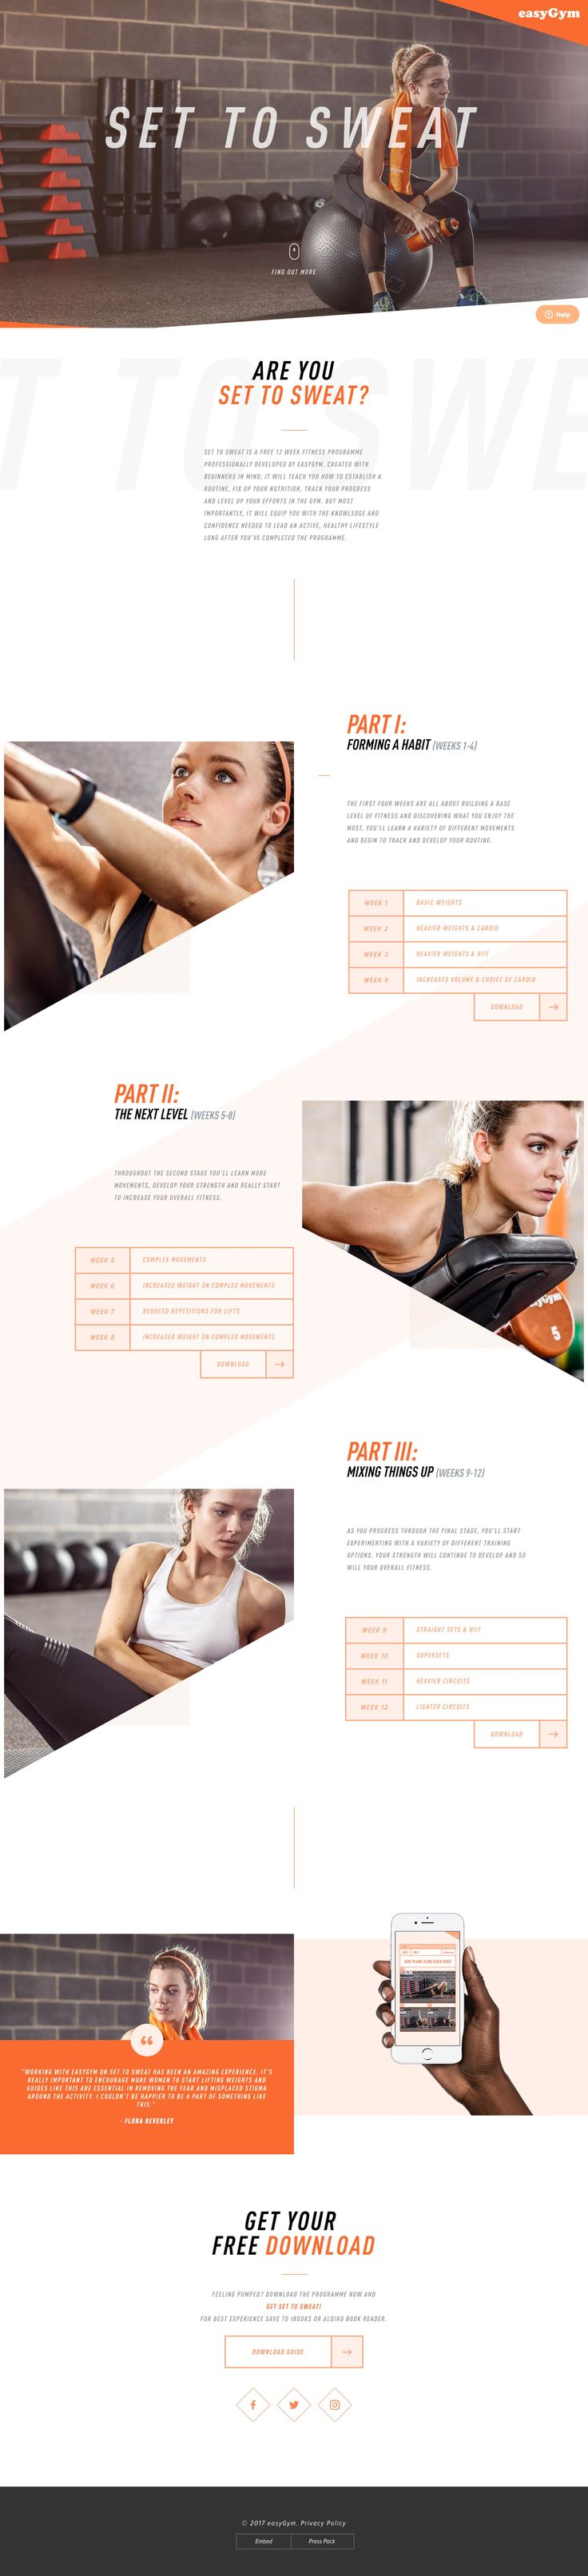 Smart Landing Page with subtle parallax effects for Set to Sweat, a free 12 week fitness program.